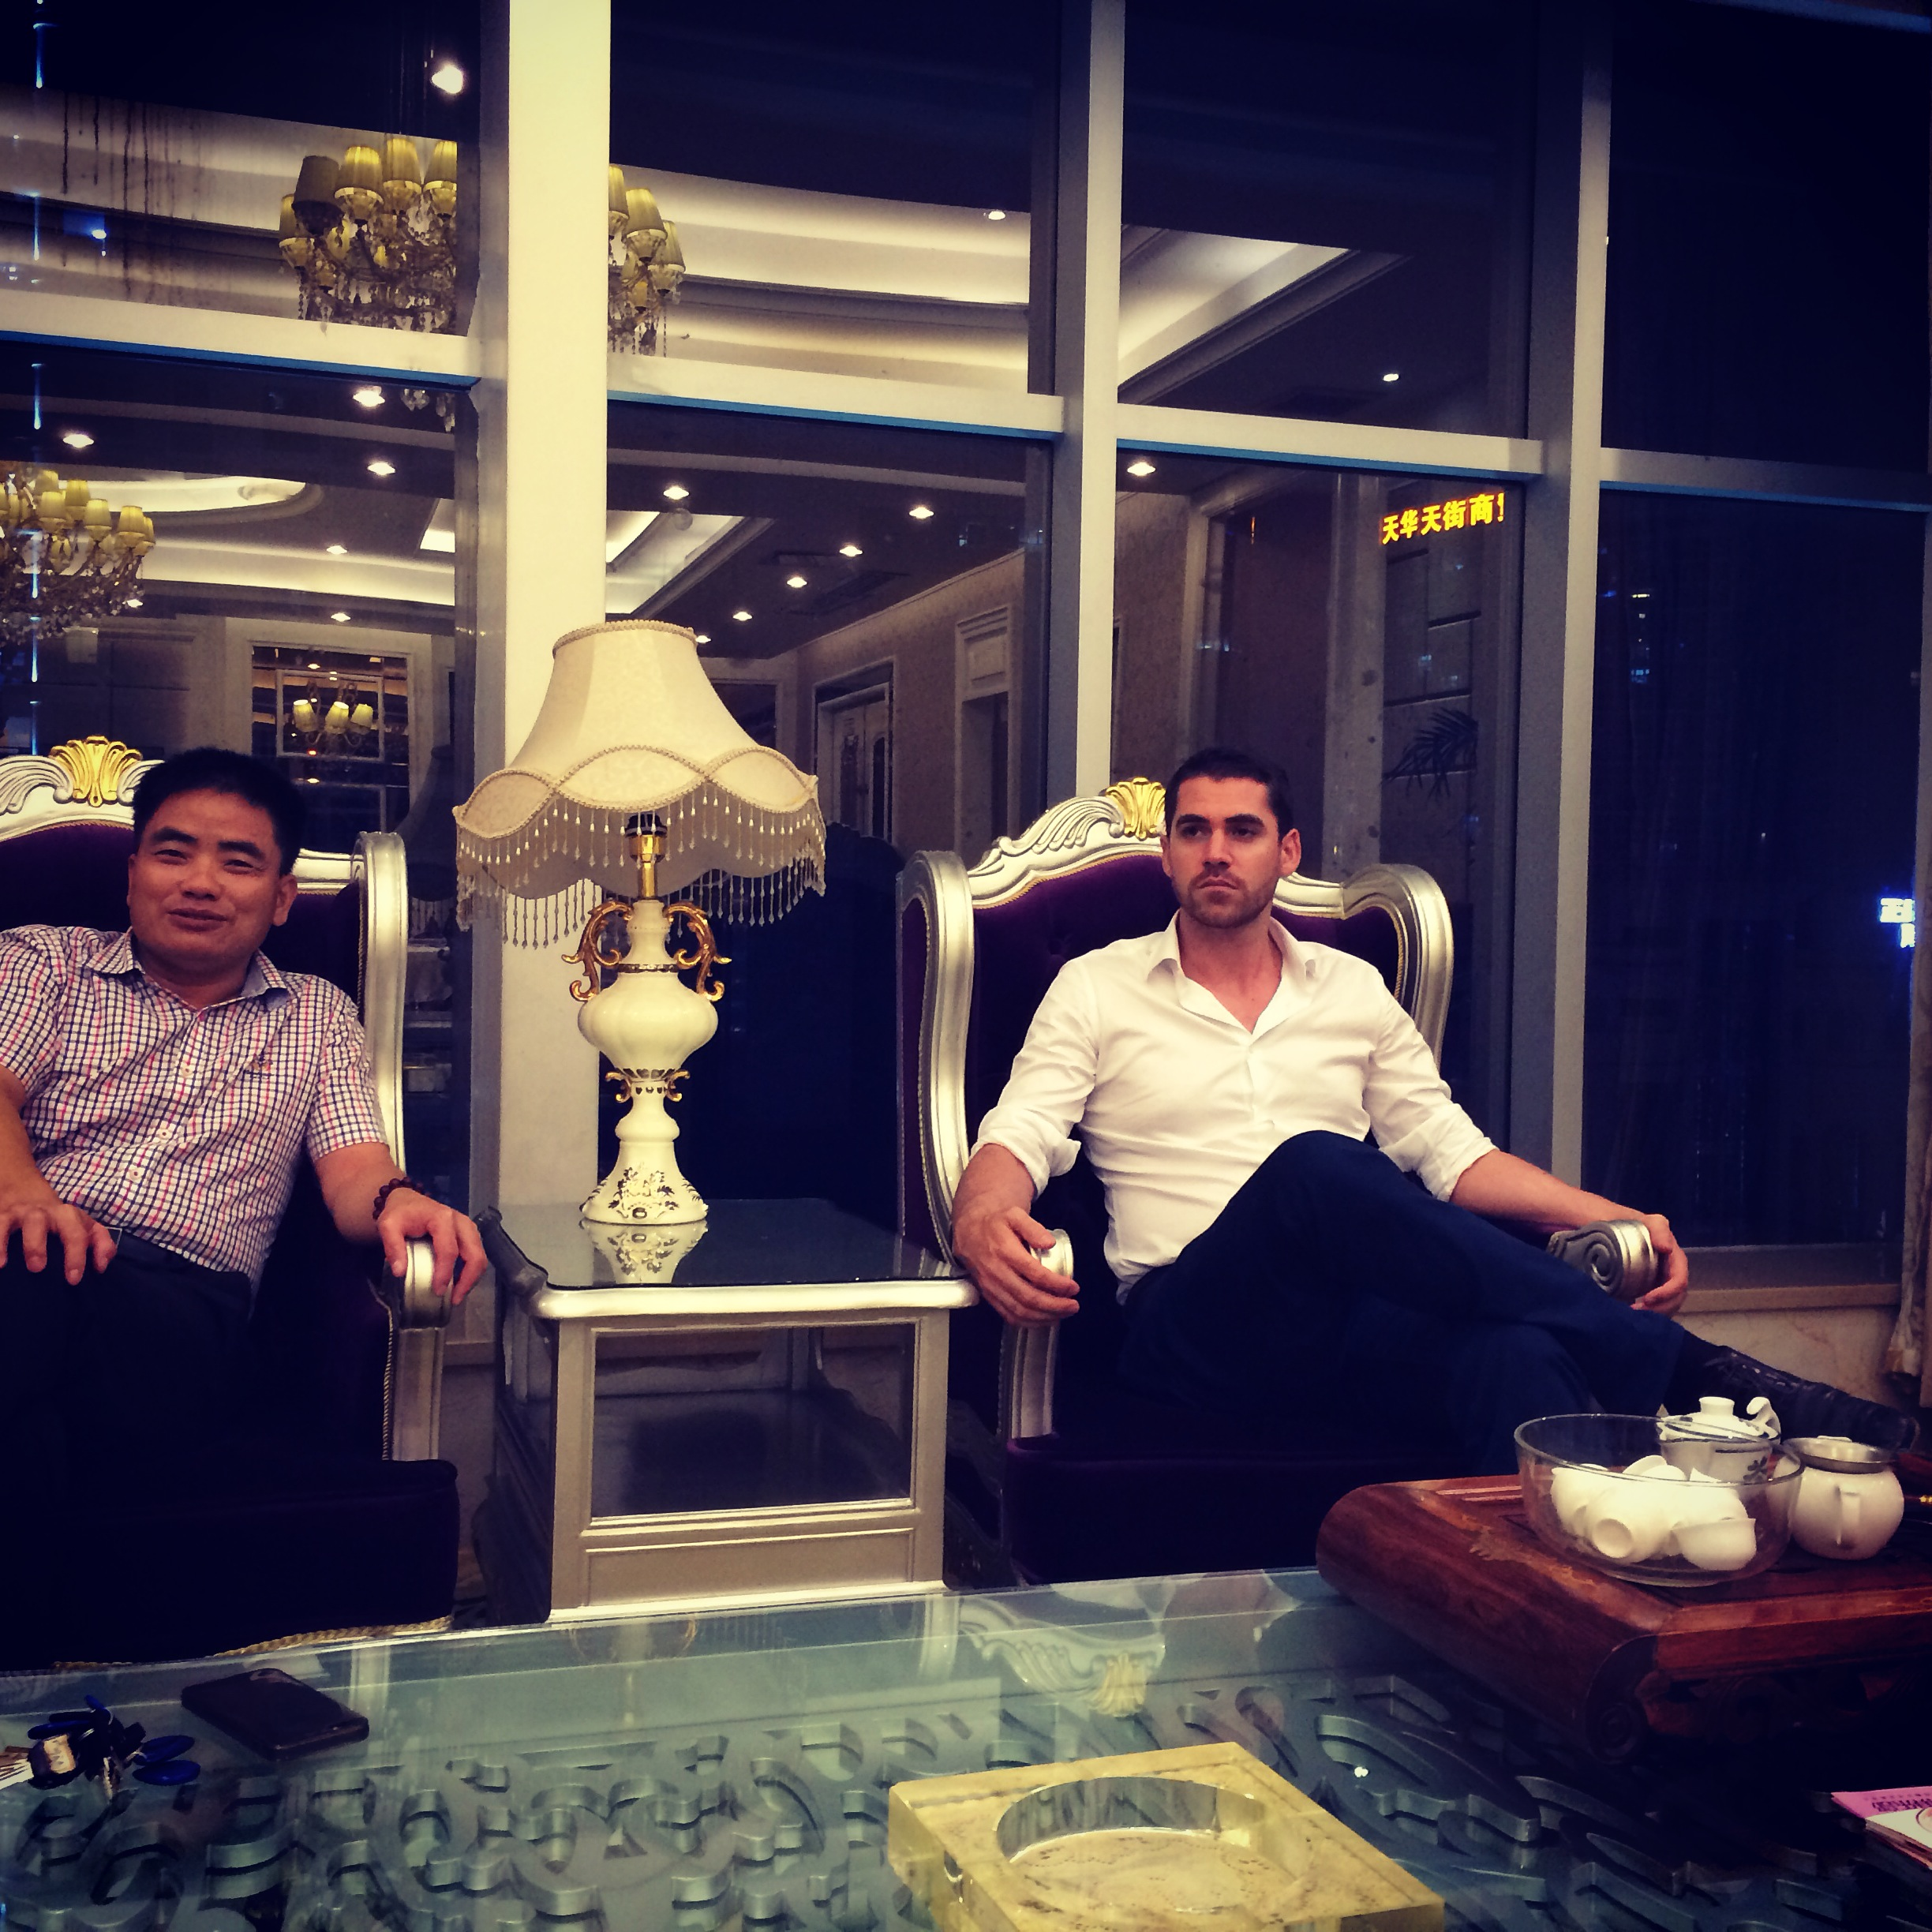 Client meeting, China.